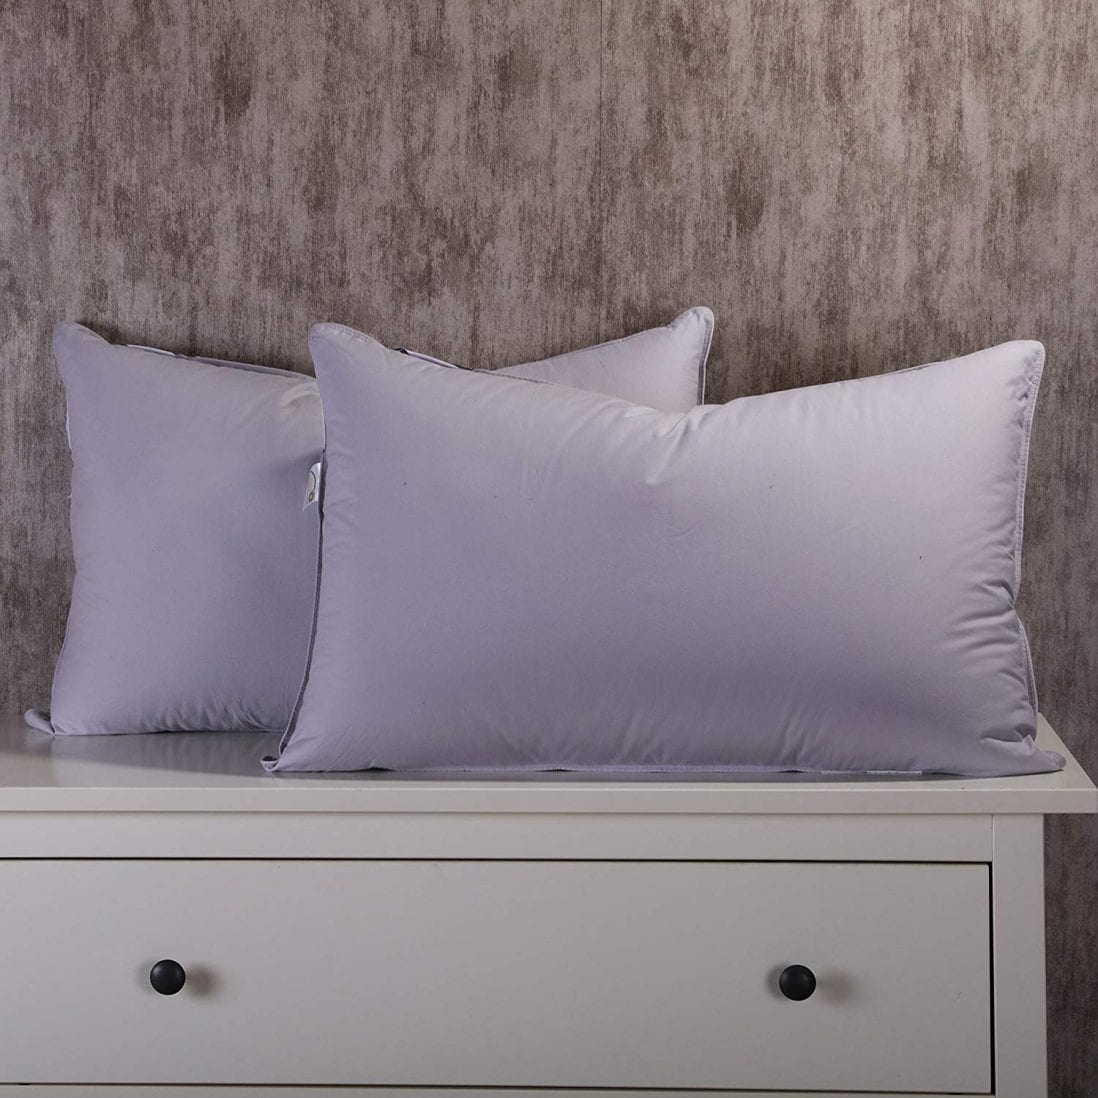 Unite Duck Down Pillow Review and Buying Guide by www.dailysleep.com